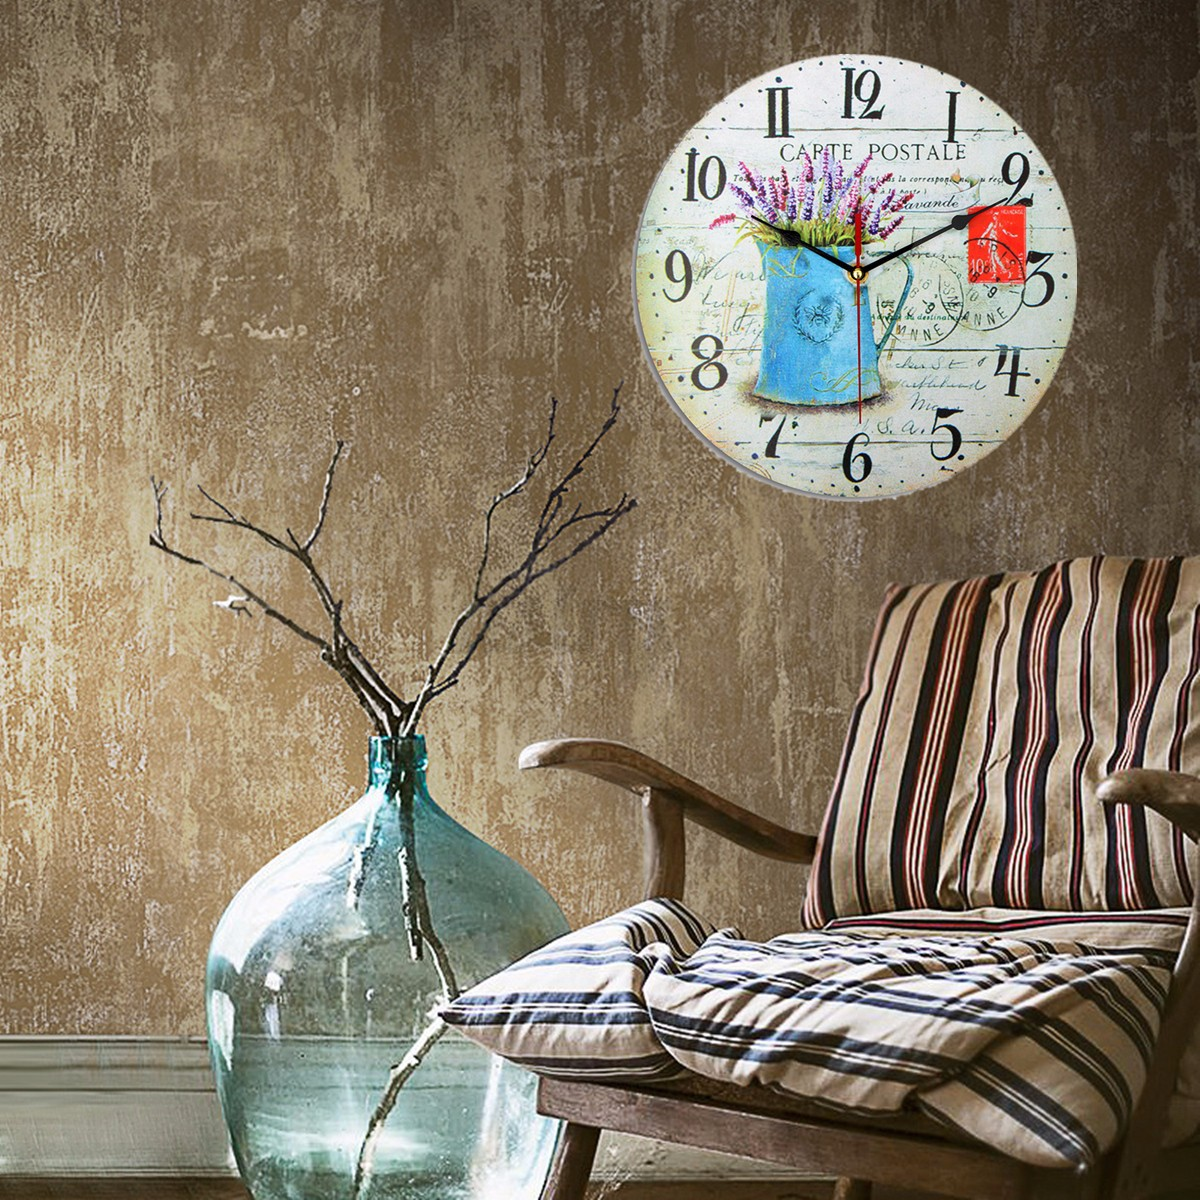 vintage wall clock wooden rustic retro shabby chic office home kitchen decor art. Black Bedroom Furniture Sets. Home Design Ideas